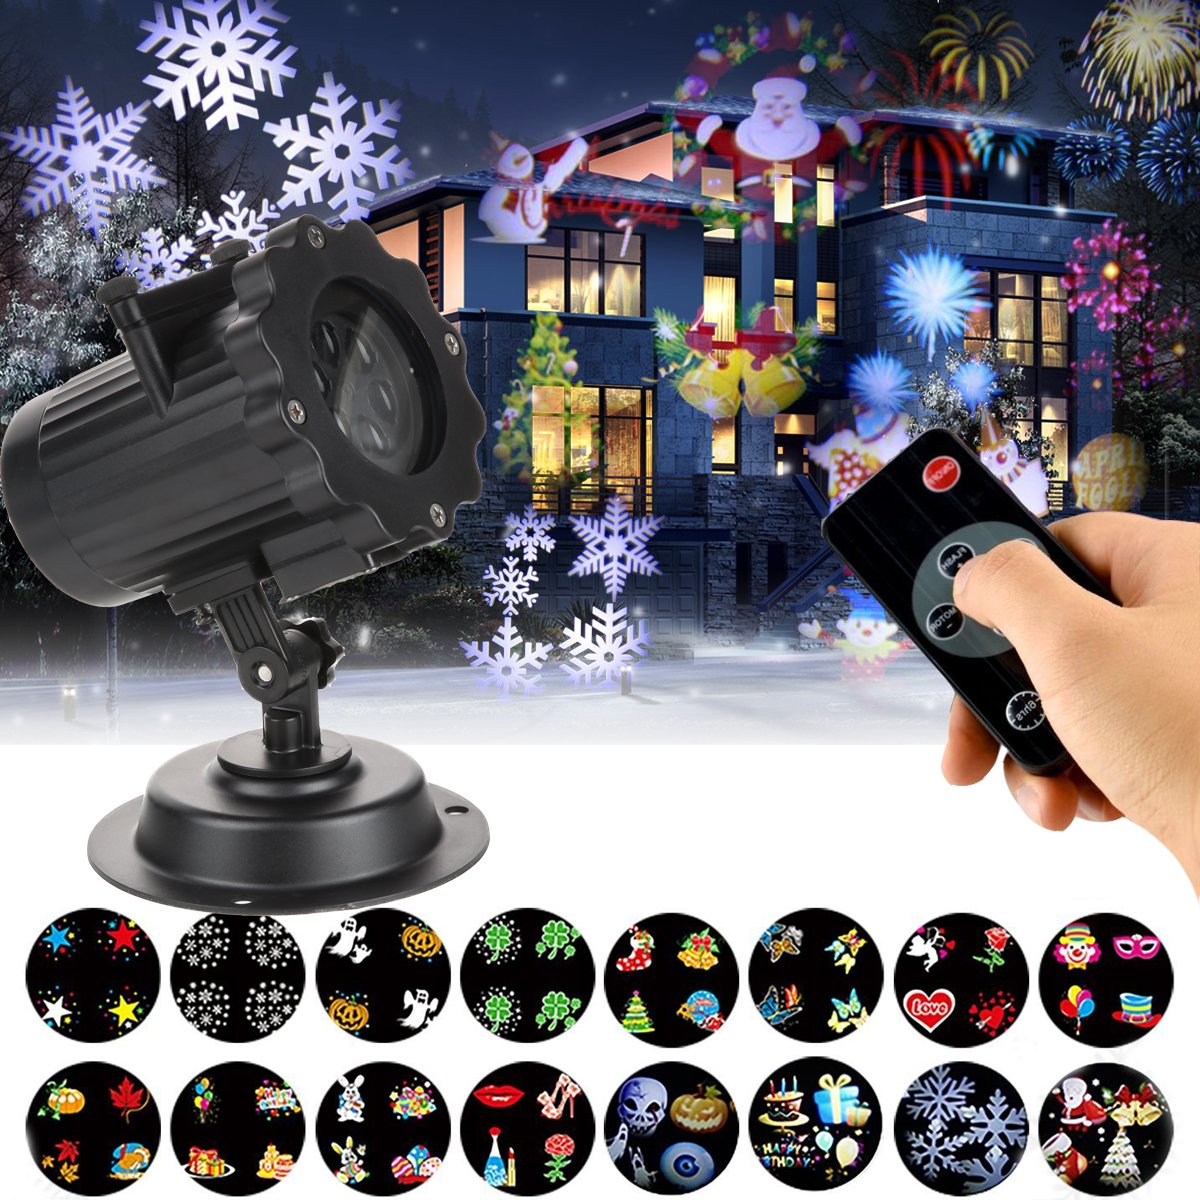 LED Projector Lights KOLIER Landscape Spotlight with Interchangeable 16 Slides Waterproof Holiday Projector Light with Remote Control for Party Birthday